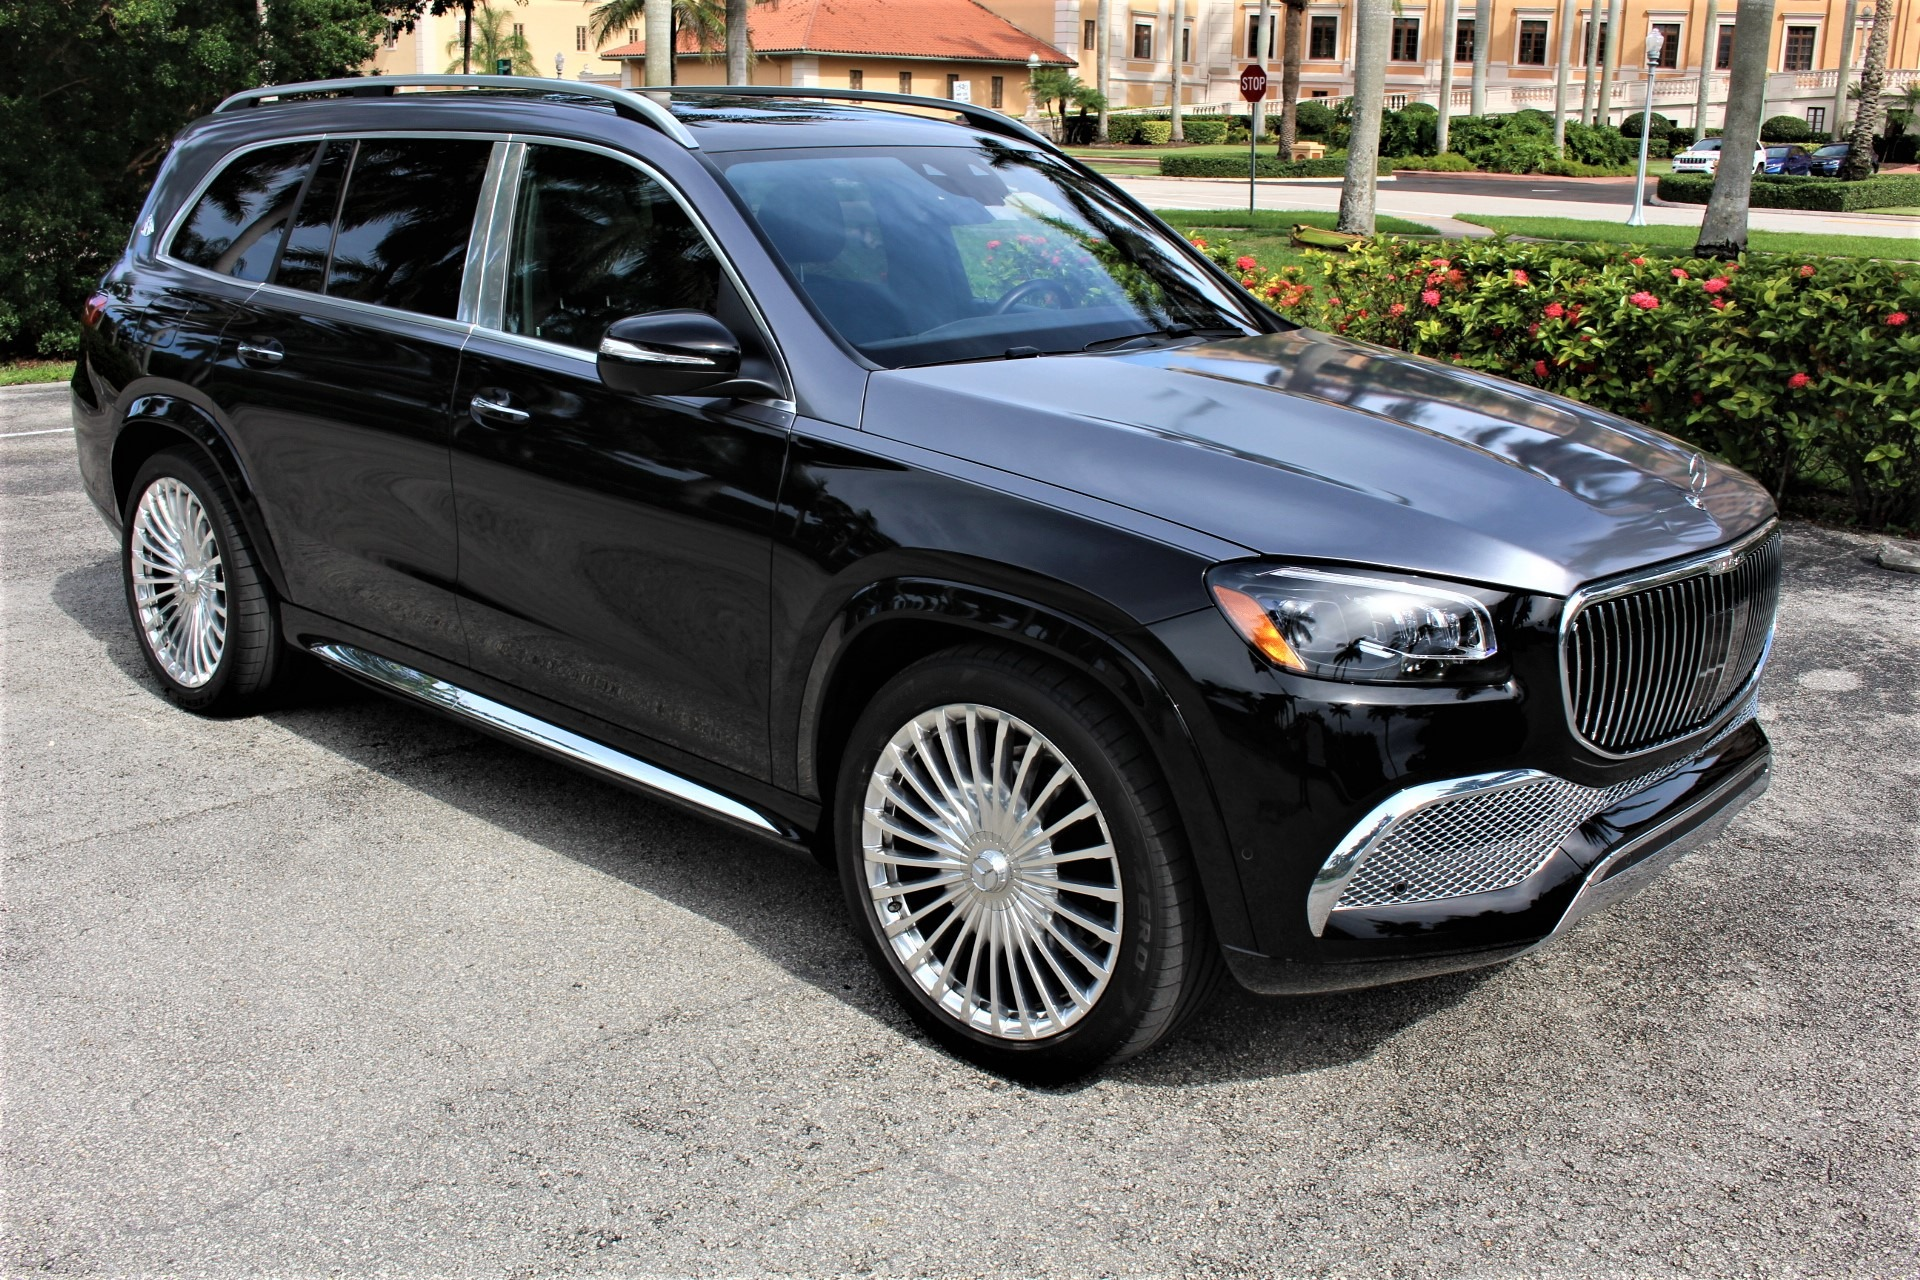 Used 2021 Mercedes-Benz GLS Mercedes-Maybach GLS 600 4MATIC for sale $234,850 at The Gables Sports Cars in Miami FL 33146 4